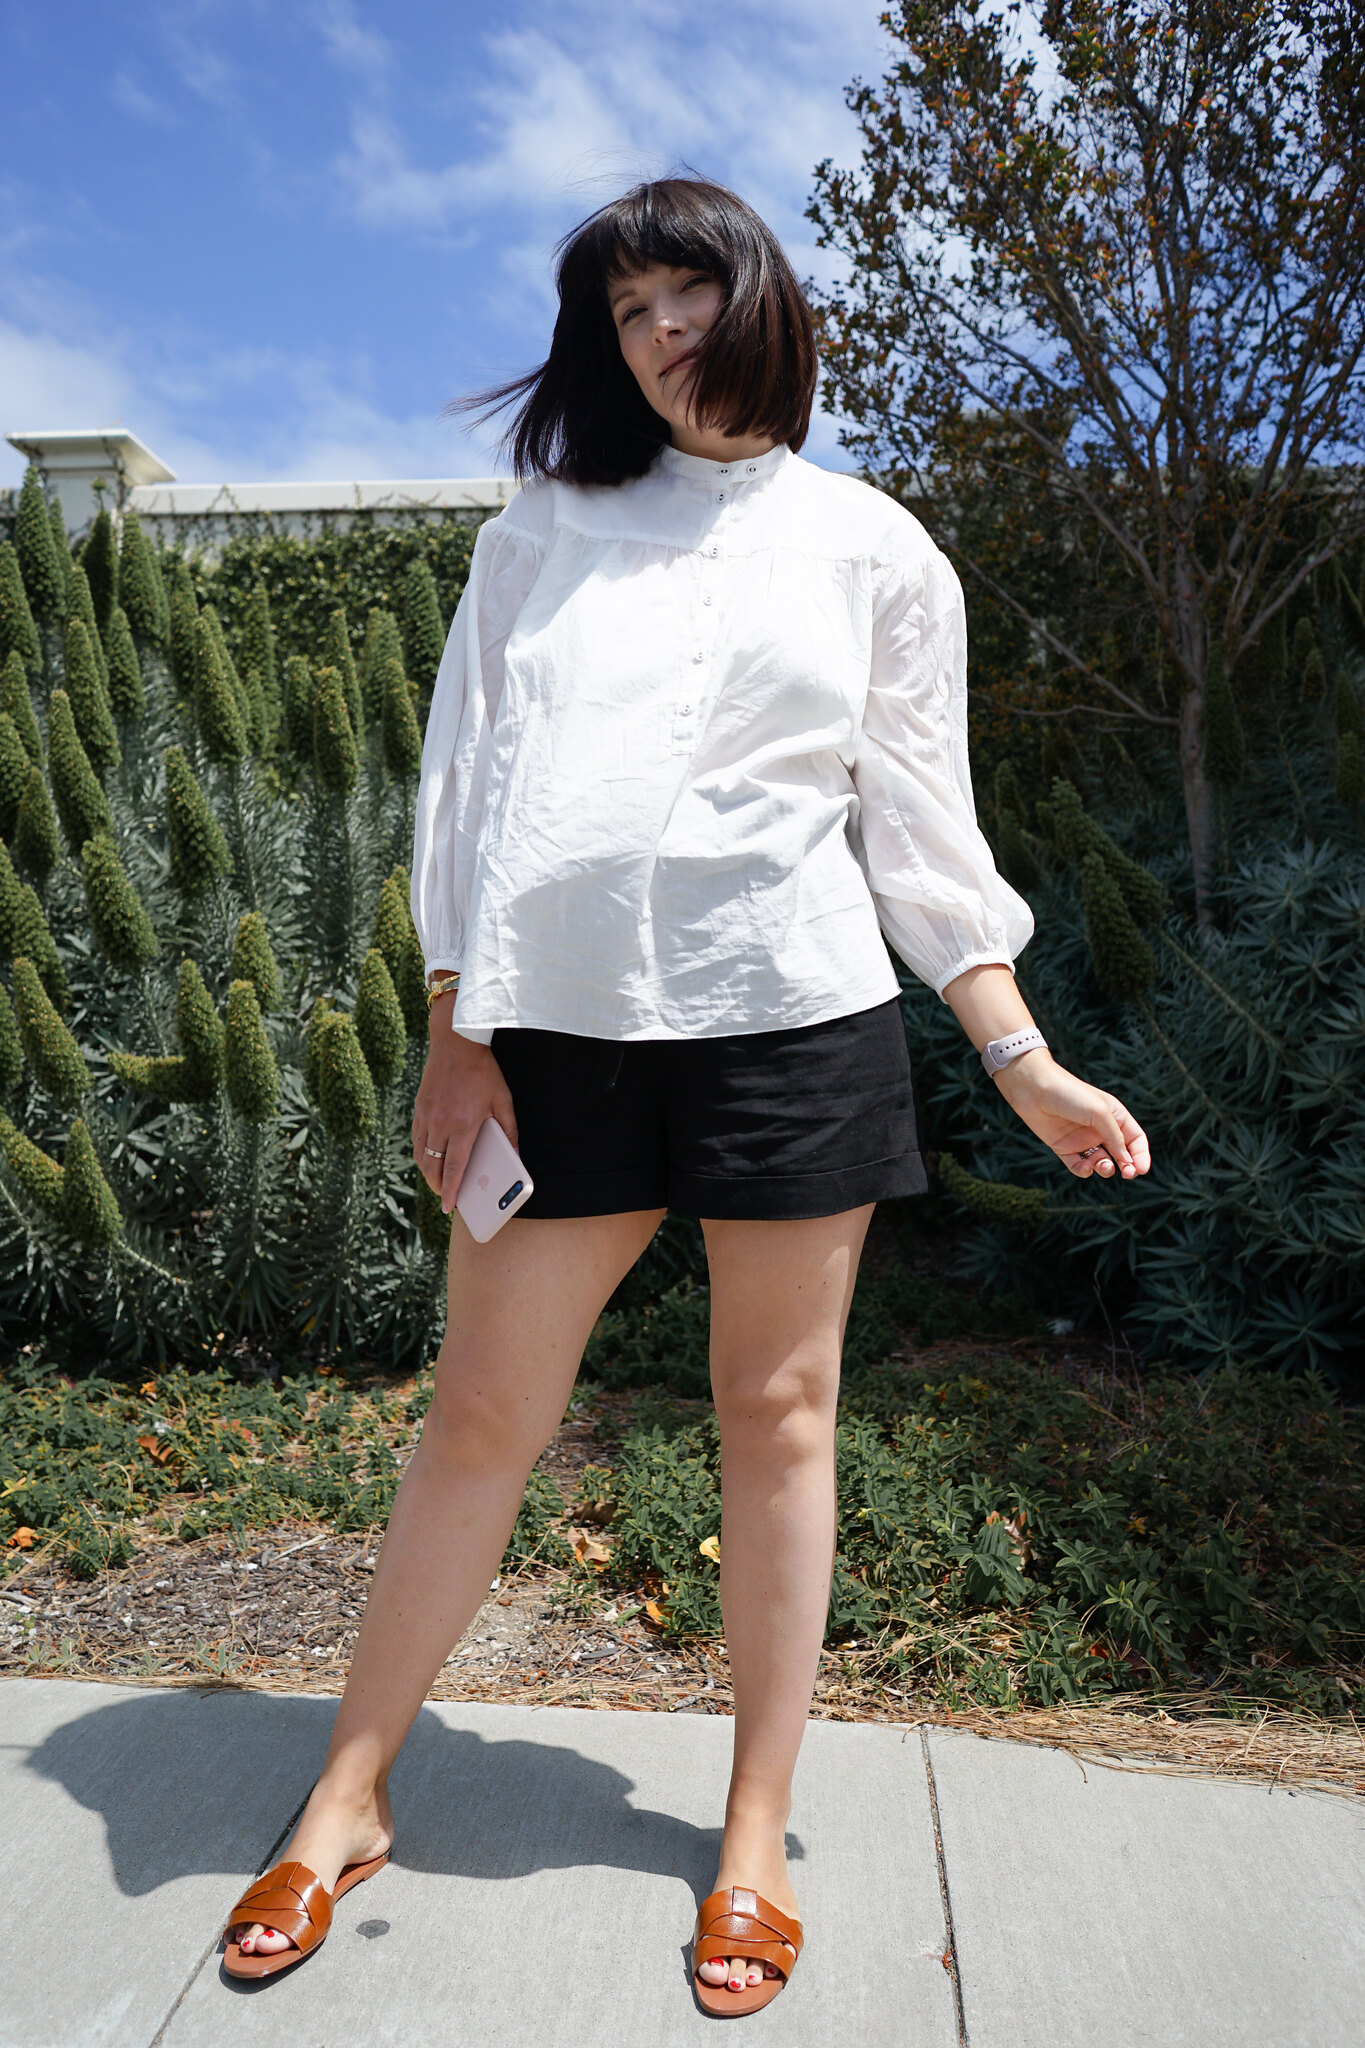 Uniqlo, Club Monaco, Tan sandals, ootd, Fbloggers, postpartum fashion, new mom, mom style